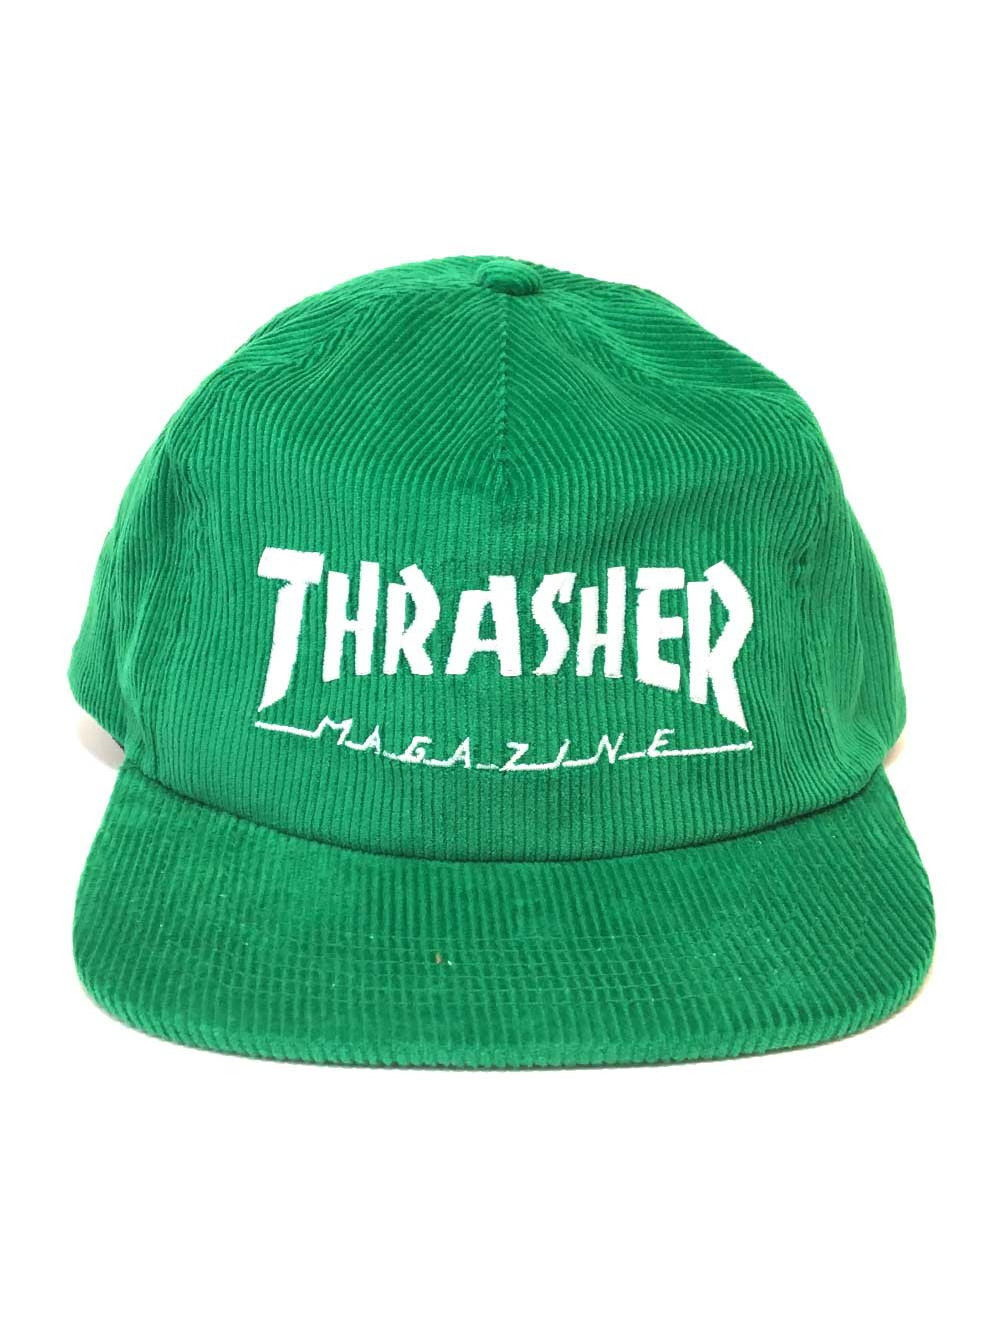 Кепка thrasher, MAGLOGOCORDUROY_greenцвет: GN